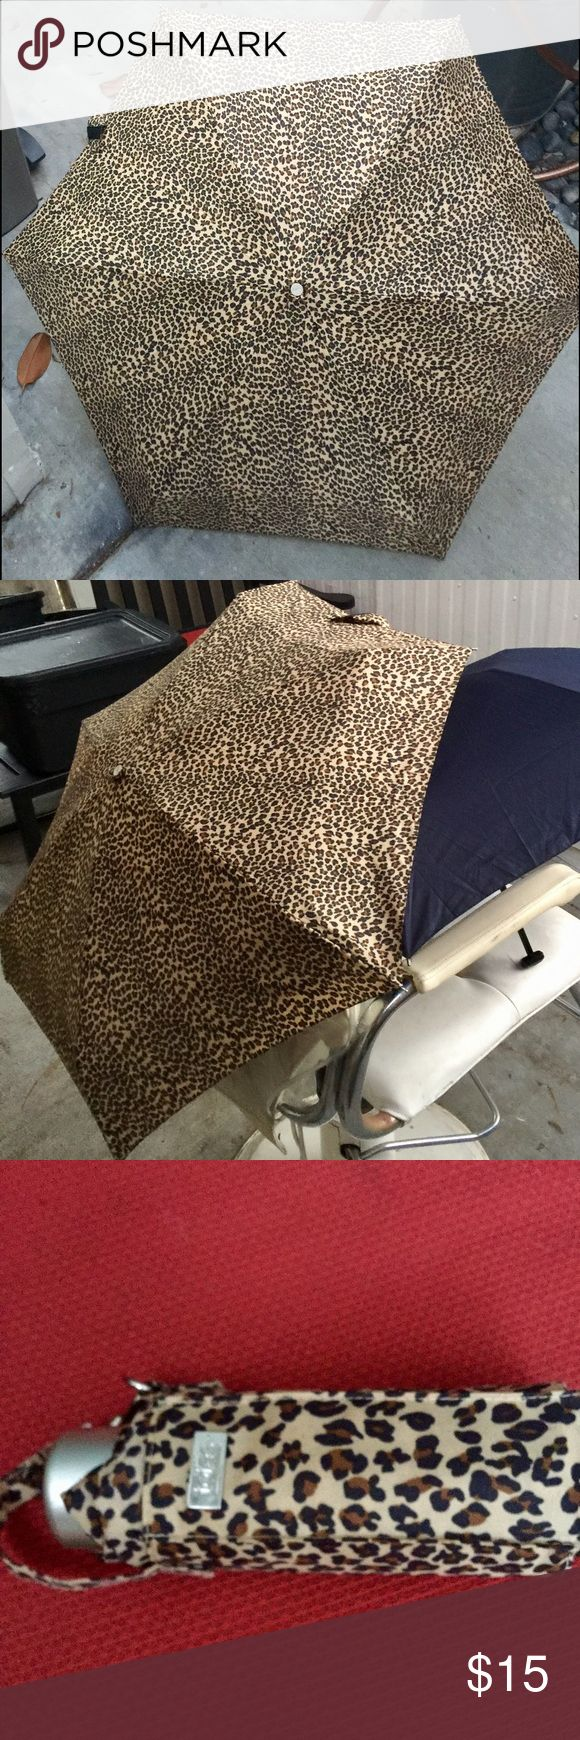 Totes portable animal print umbrella new condition UMBRELLA perfect for this fall weather!!! New condition! Opened but never actually used!!! Leopard animal print. Weight: 8oz Totes Accessories Umbrellas